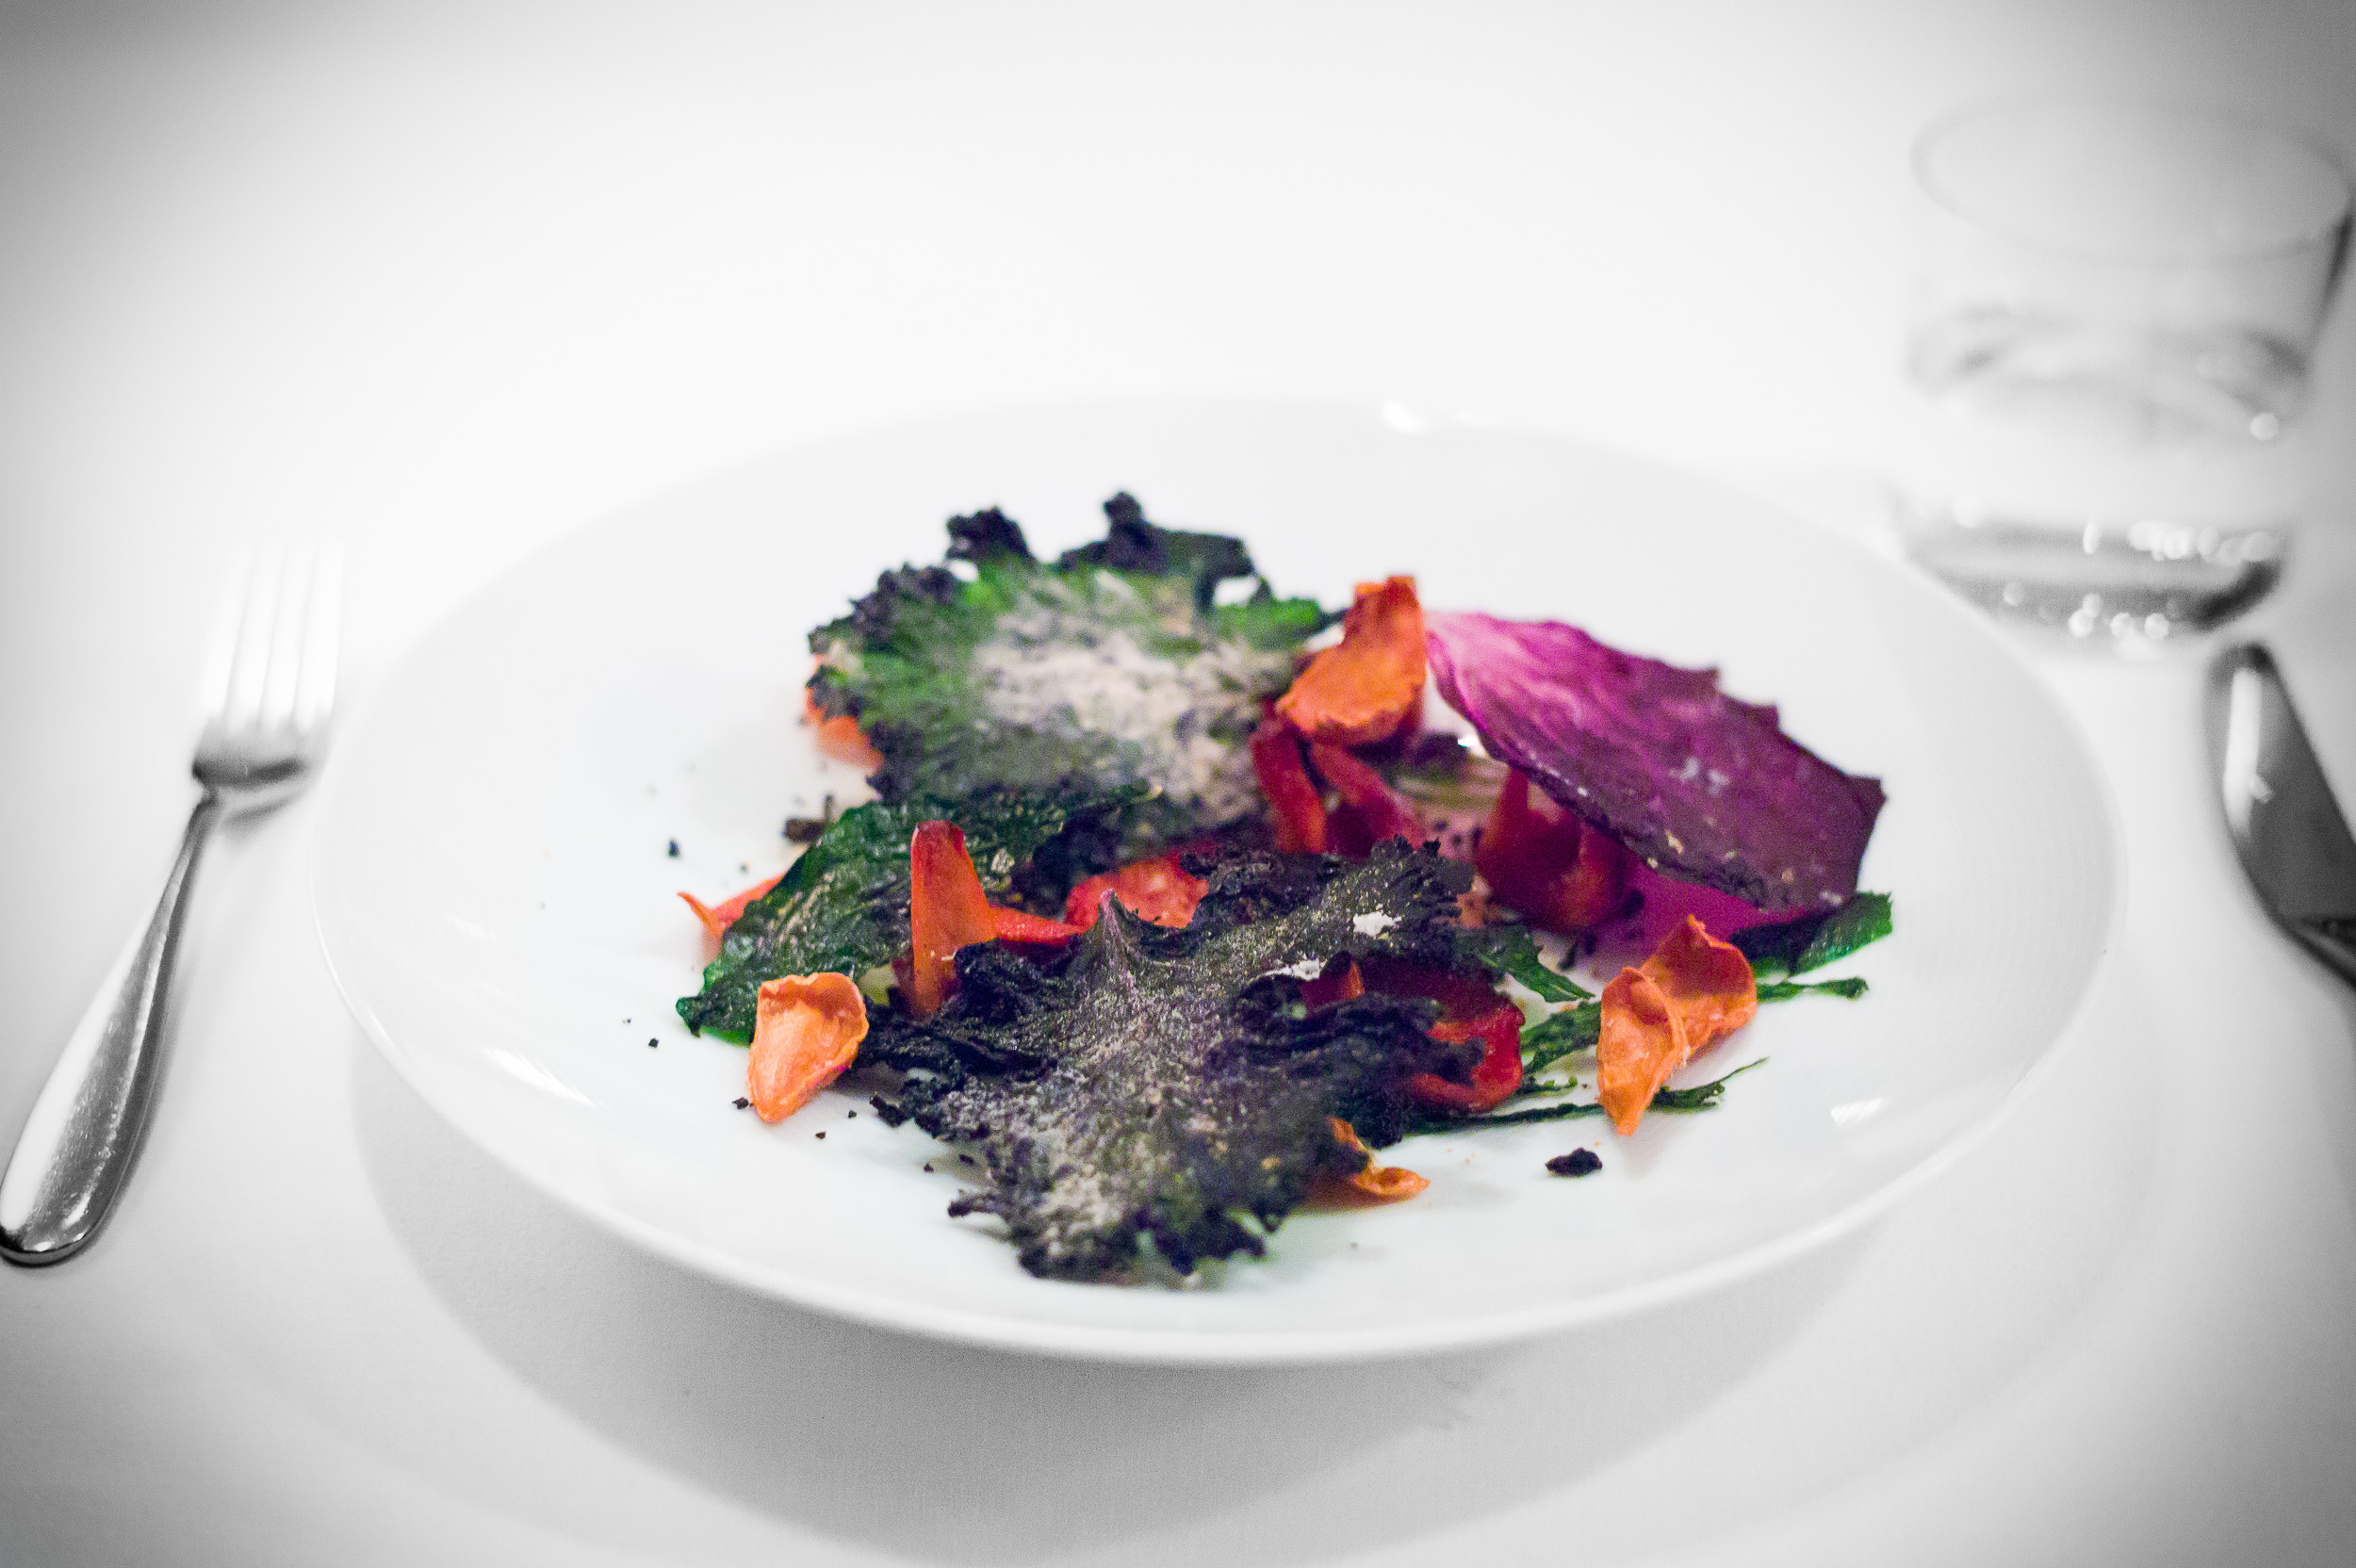 7th Course: Mushrooms with autumn leaves and sticks